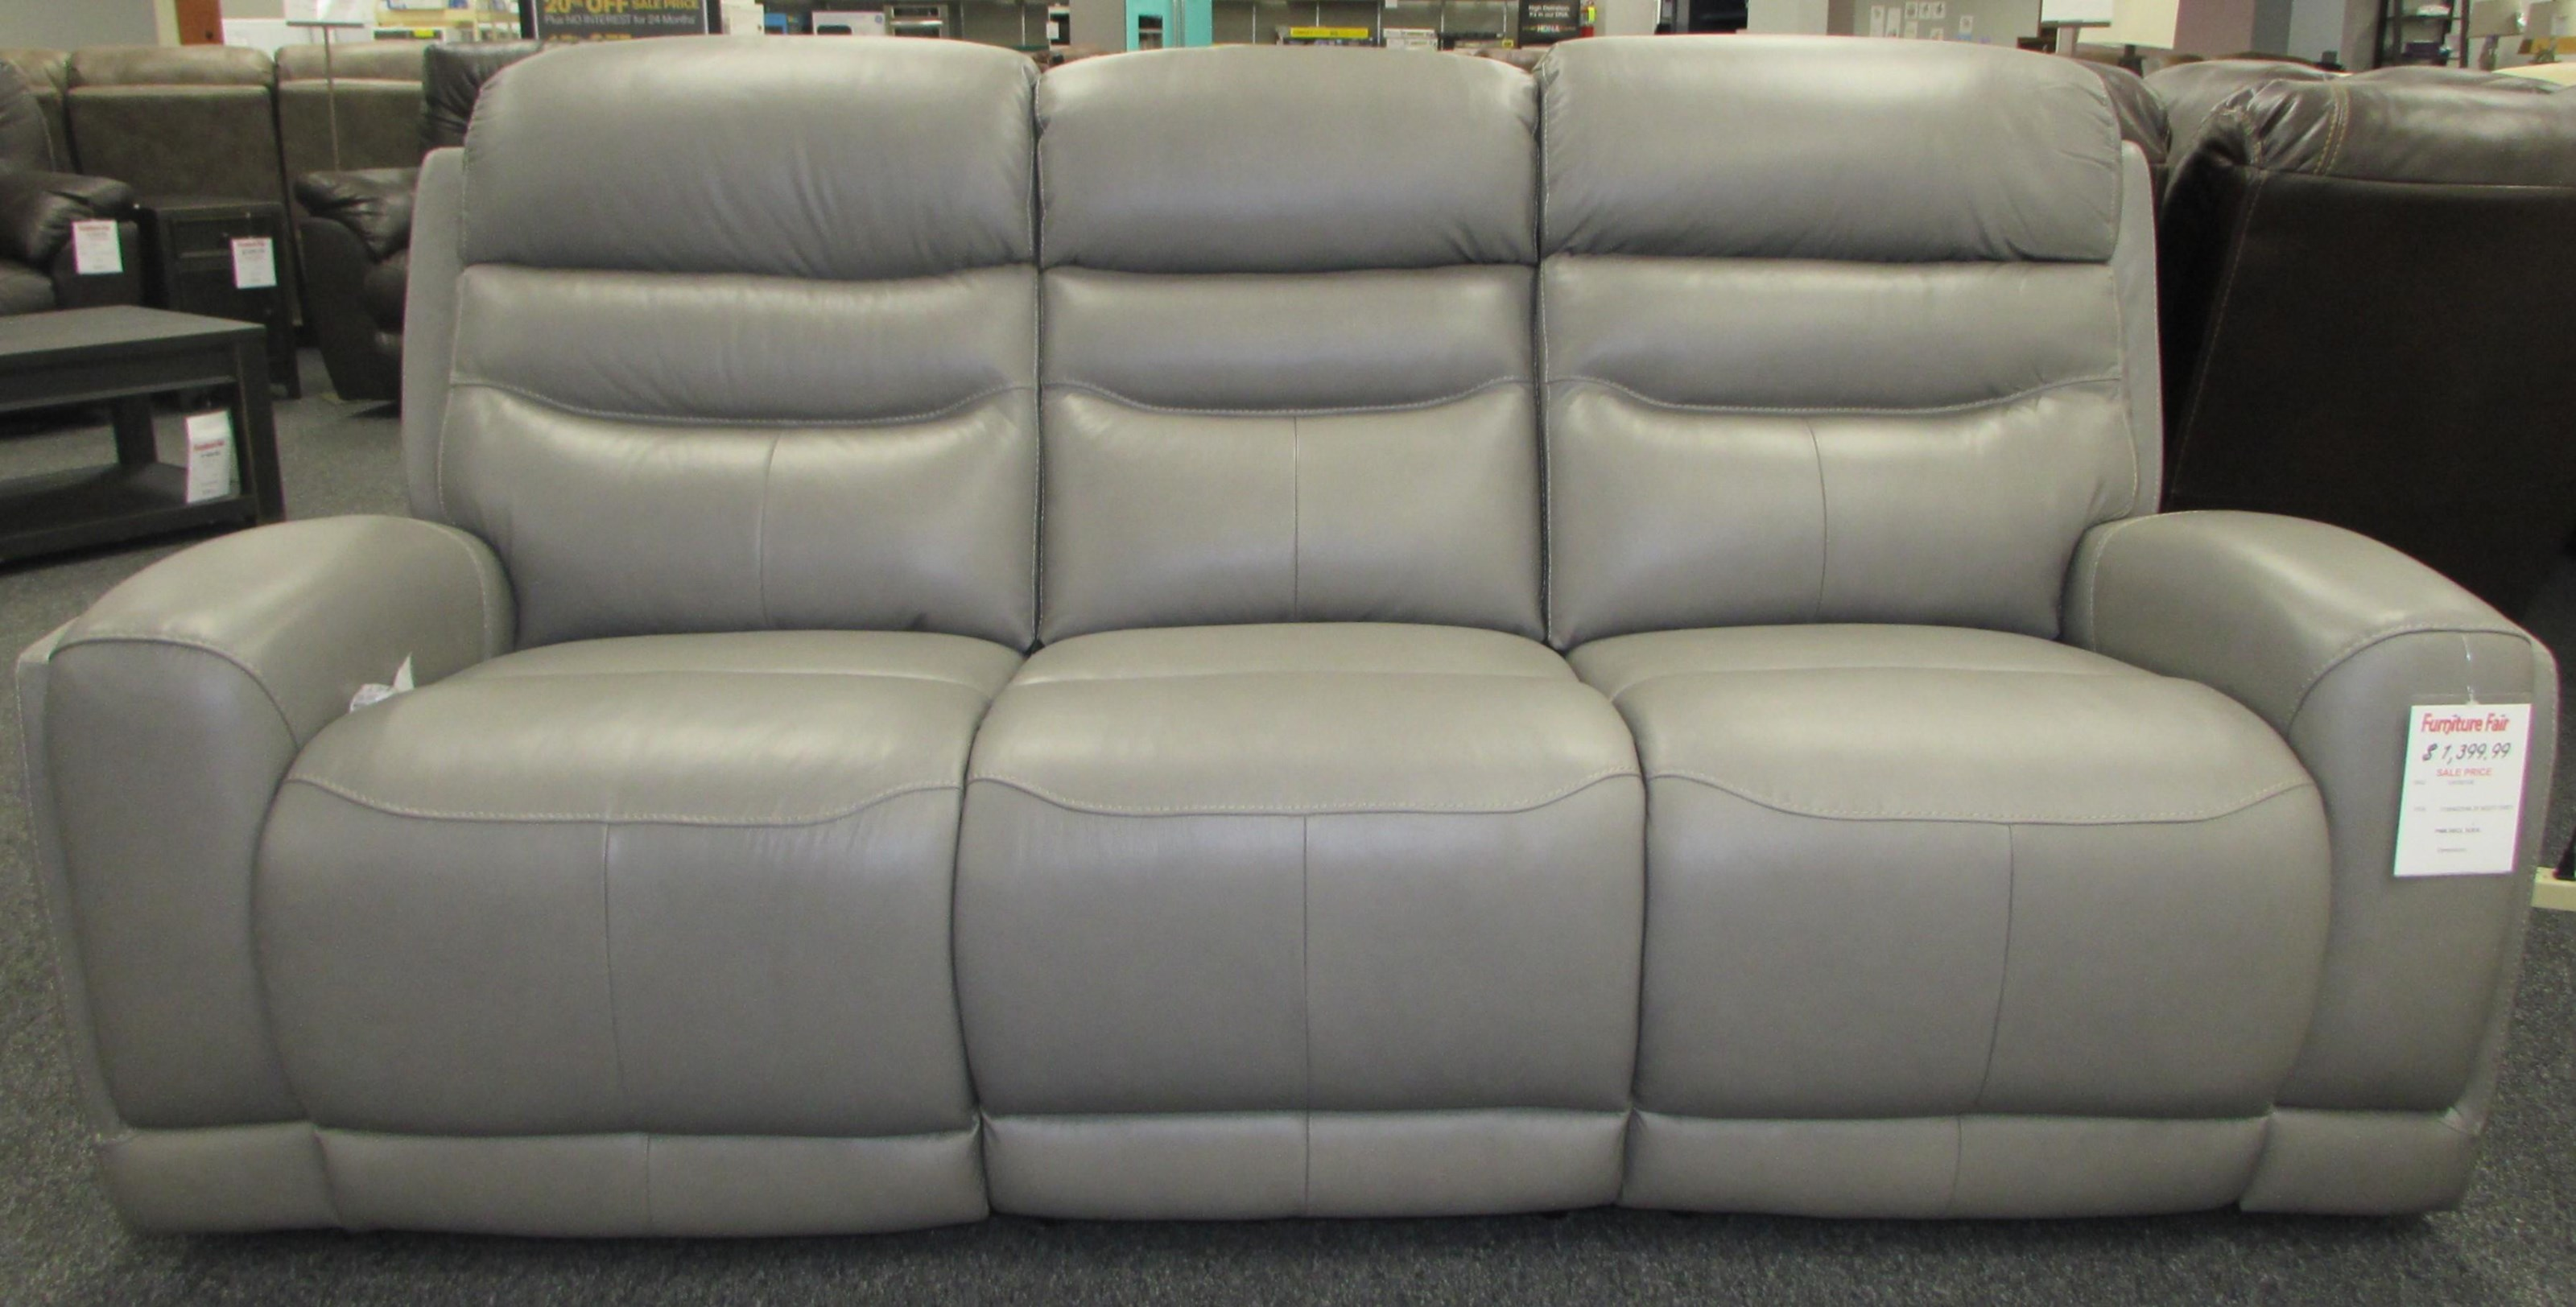 Violino 31964EMHM IVORY Power Reclining Sofa - Item Number: 31964EMHMSOFAGREY